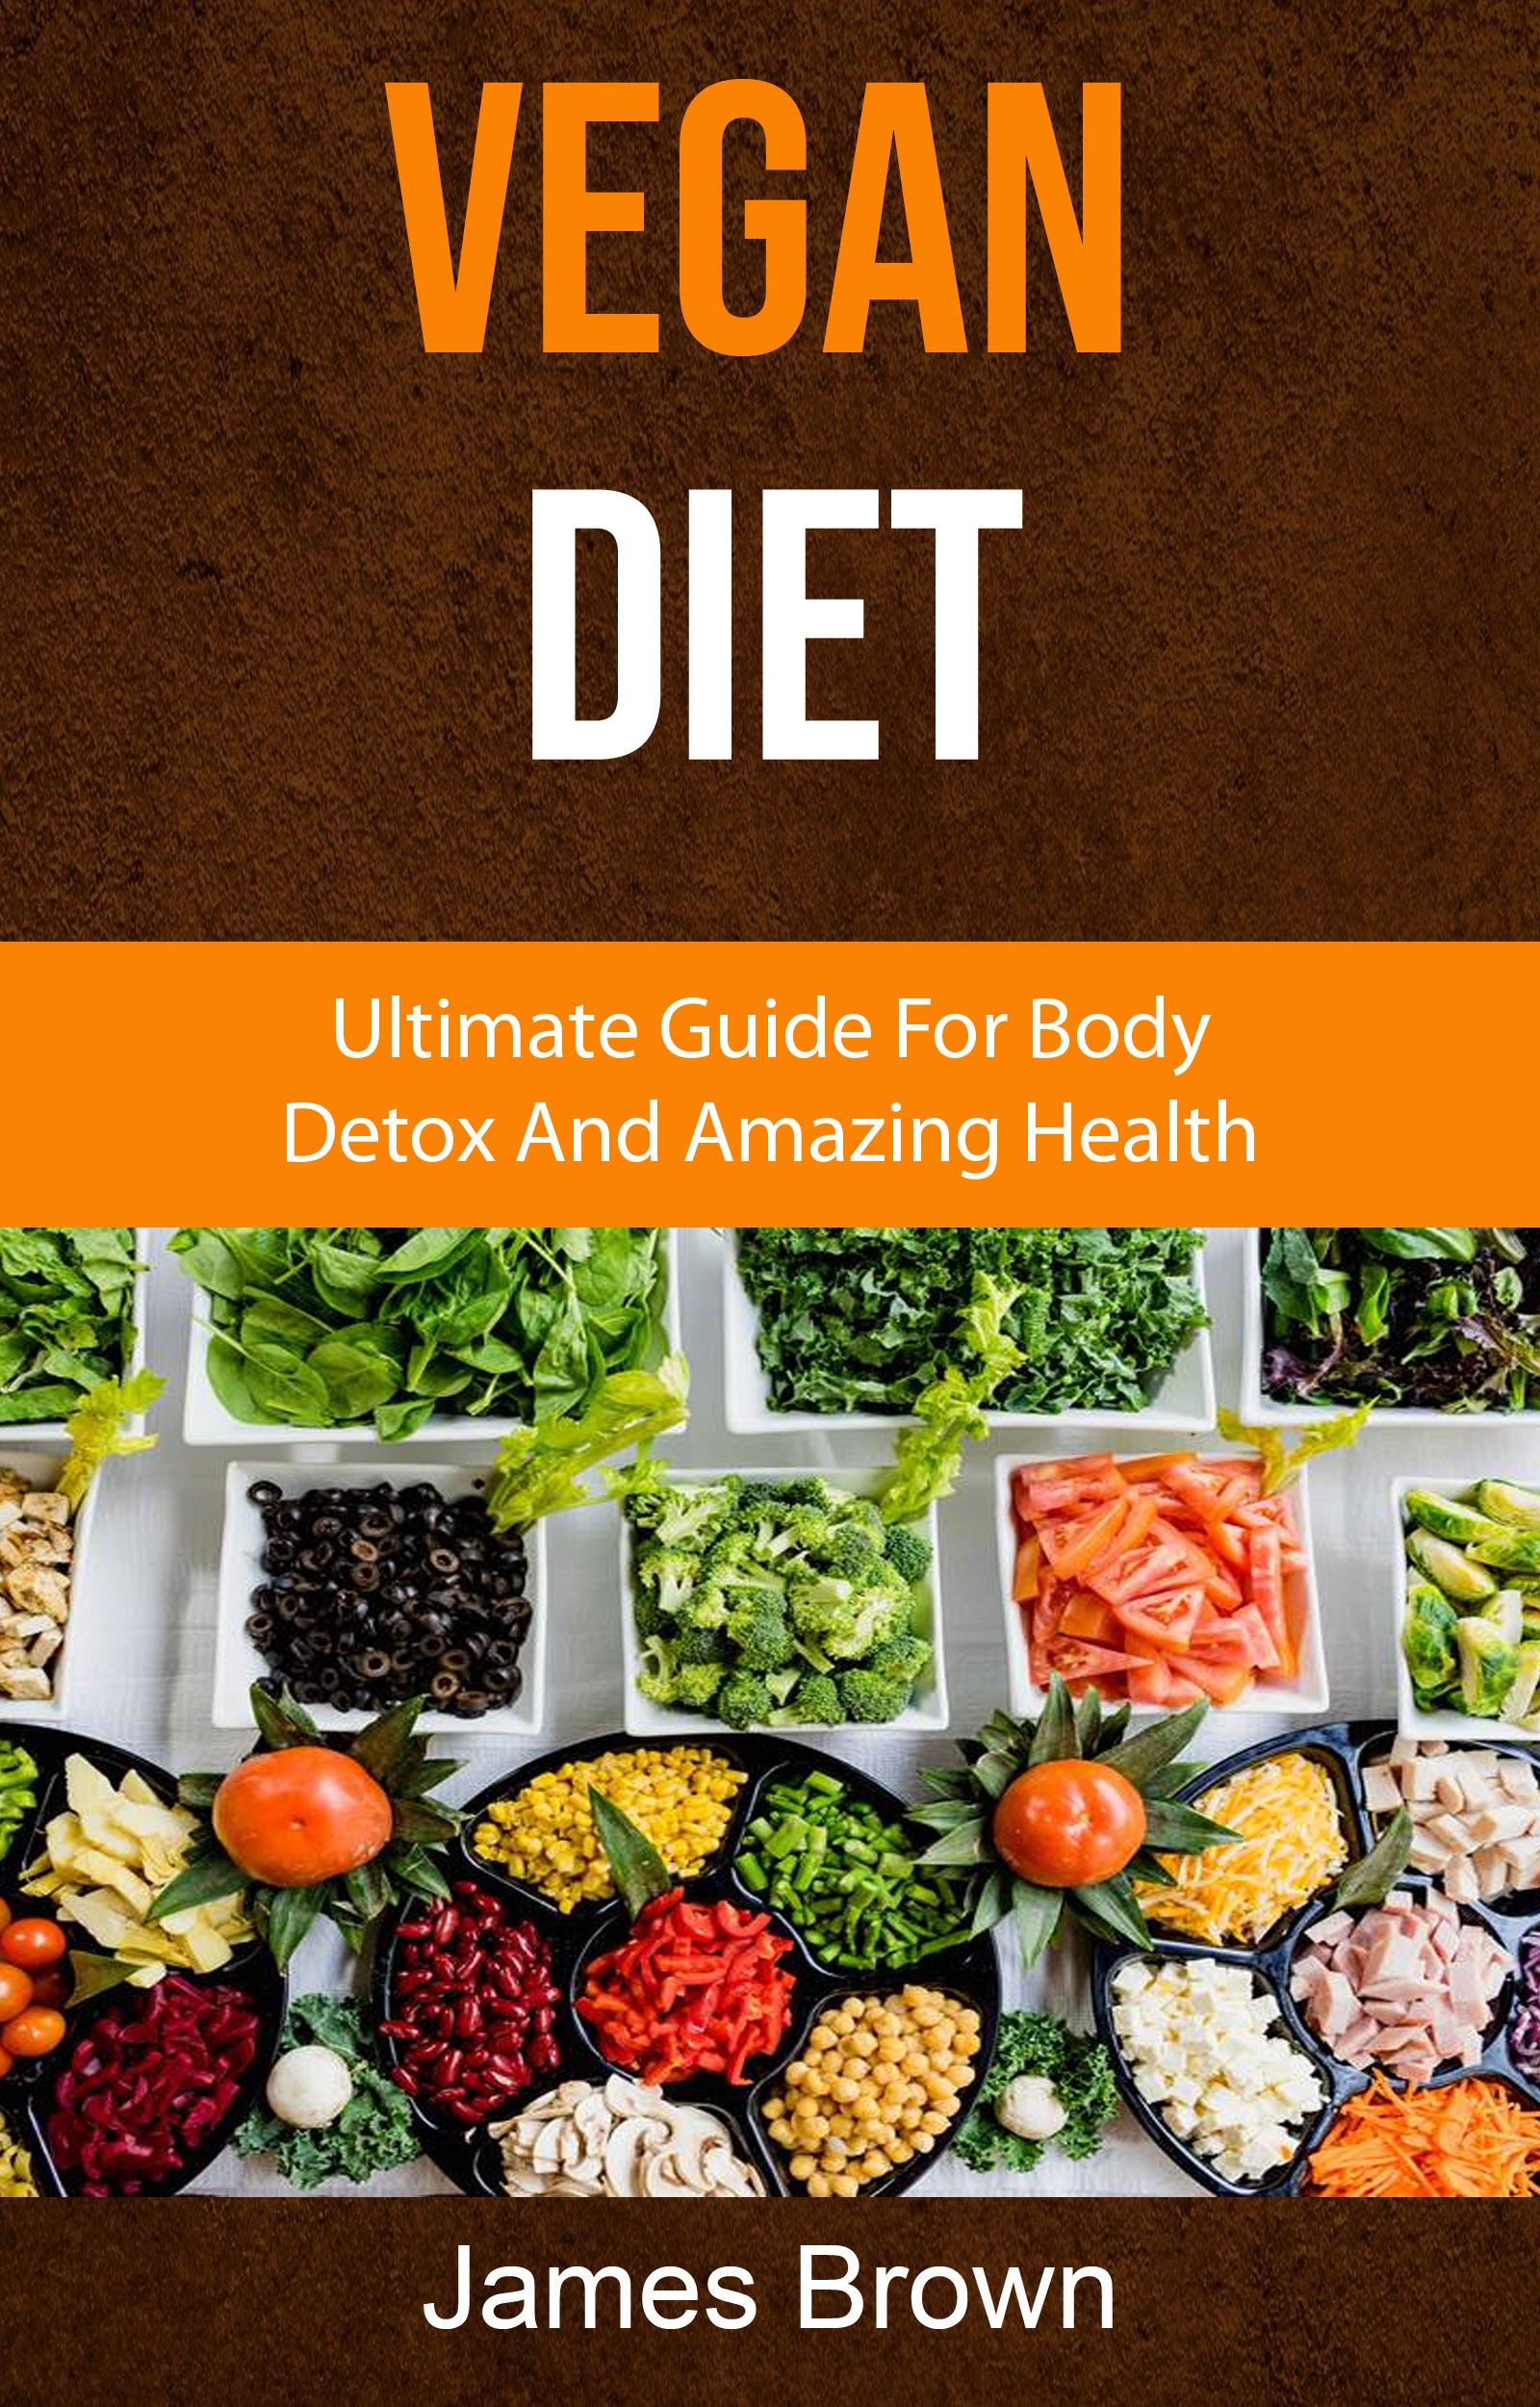 Vegan diet: ultimate guide for body detox and amazing health